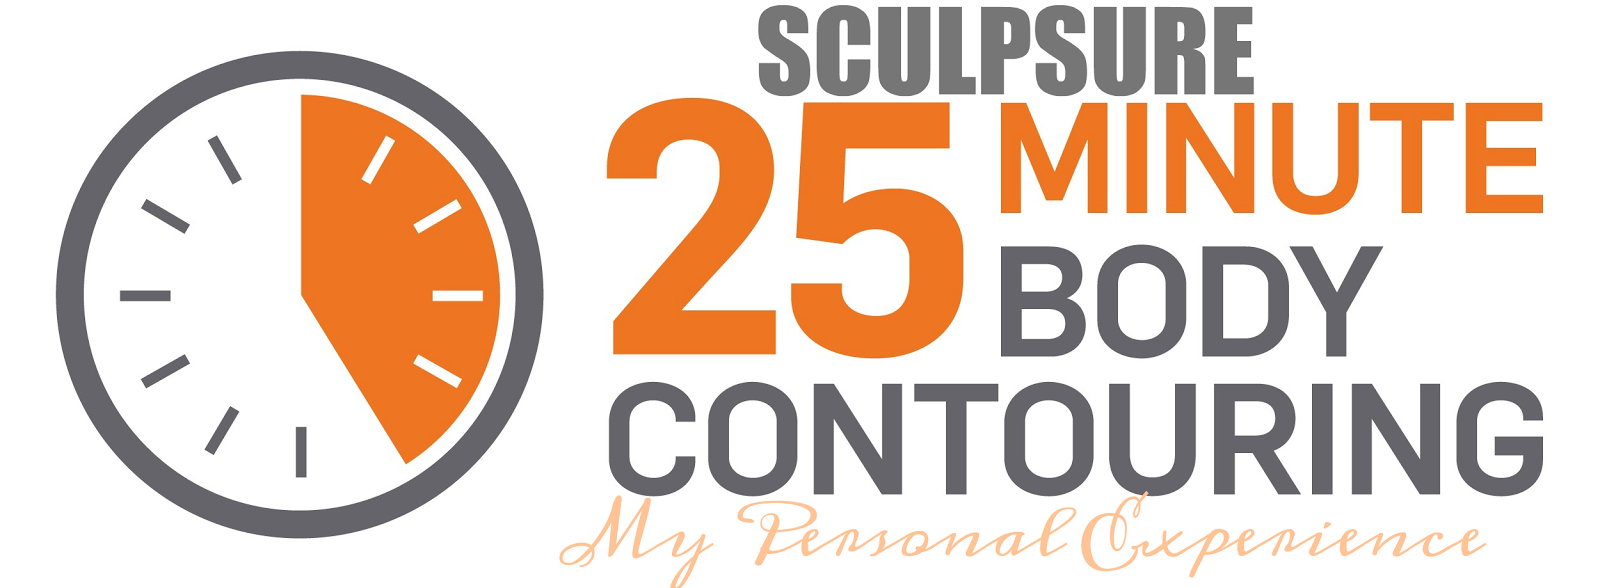 Sculpsure Laser Body Contouring Explained: My Experience + Before/After Photos